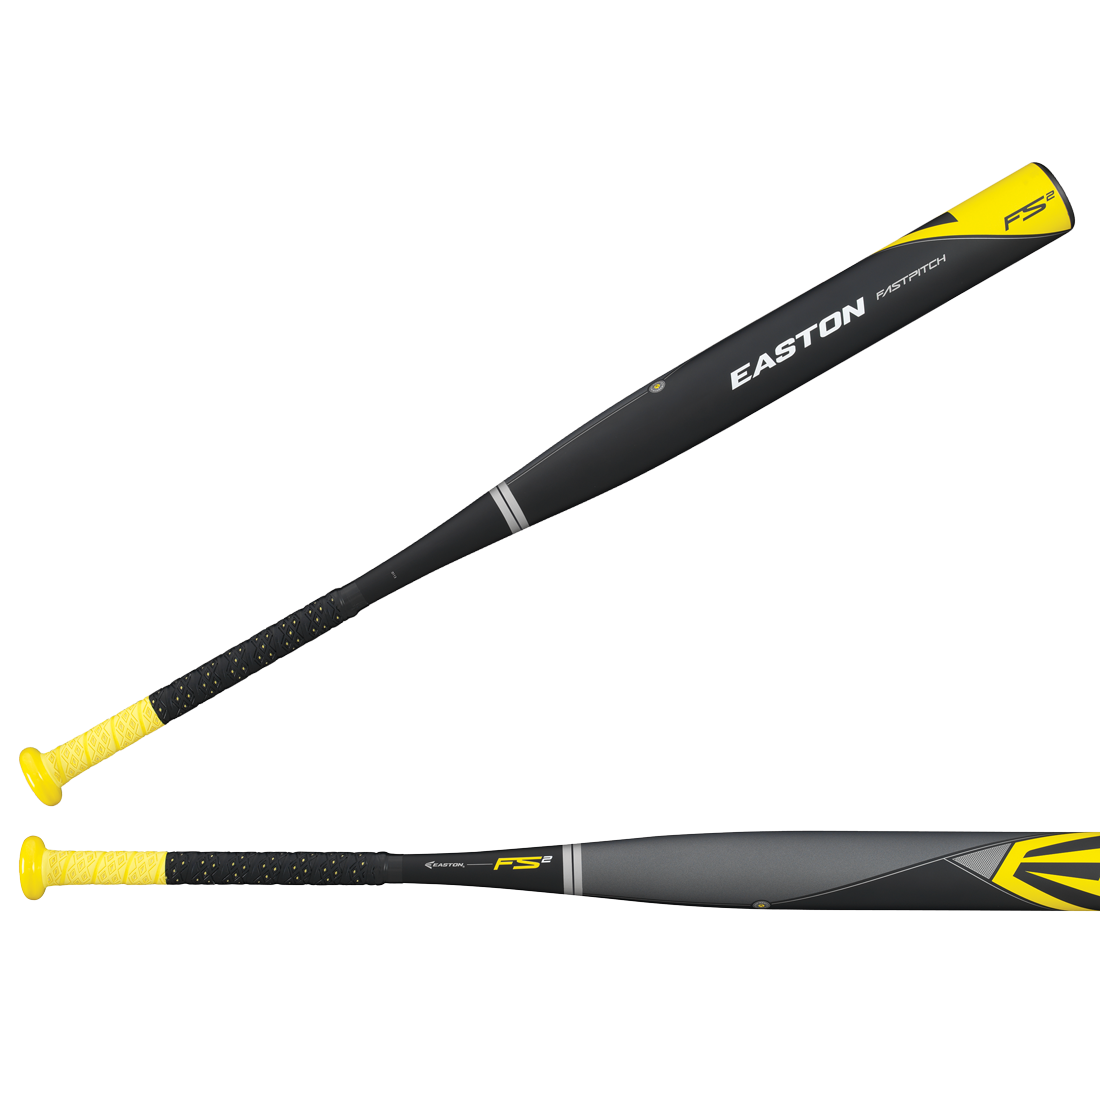 softball bat png